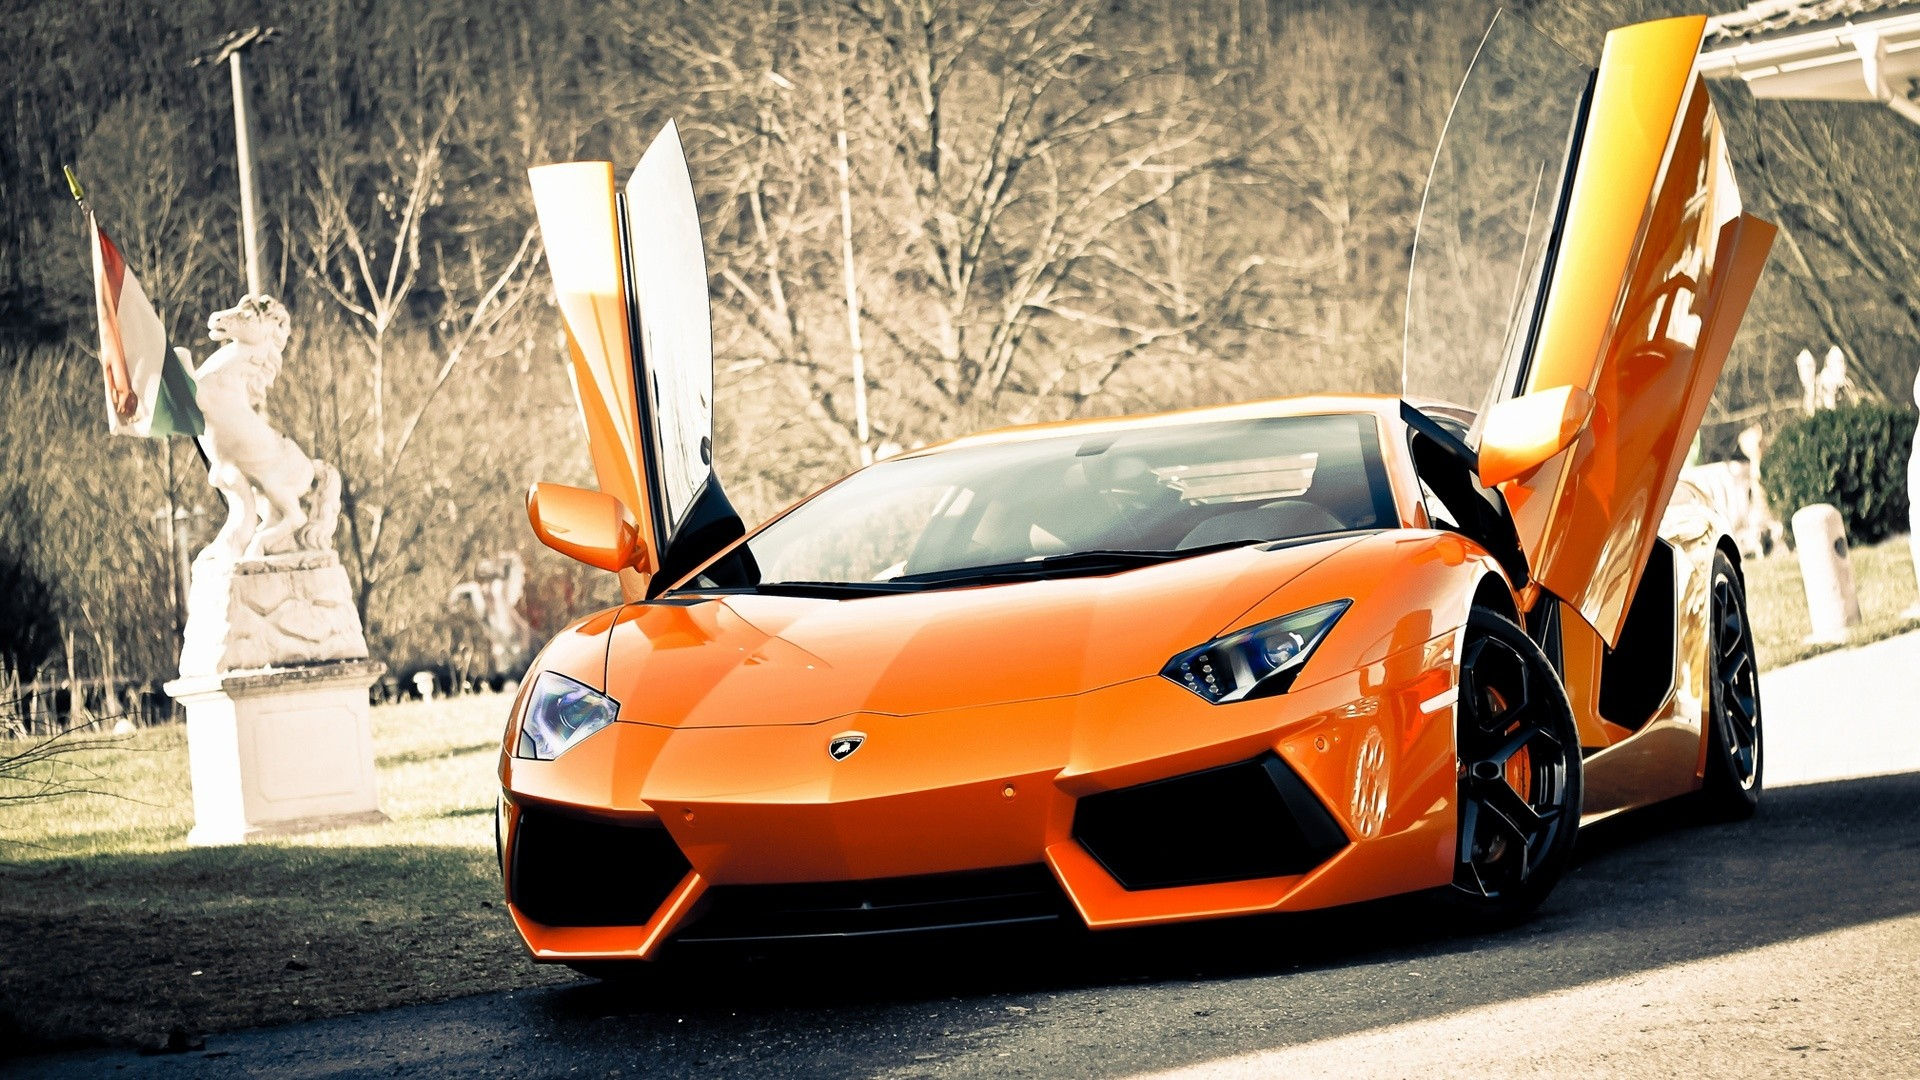 New Lamborghini Aventador Sports Cars HD Wallpaper New Lamborghini 1920x1080